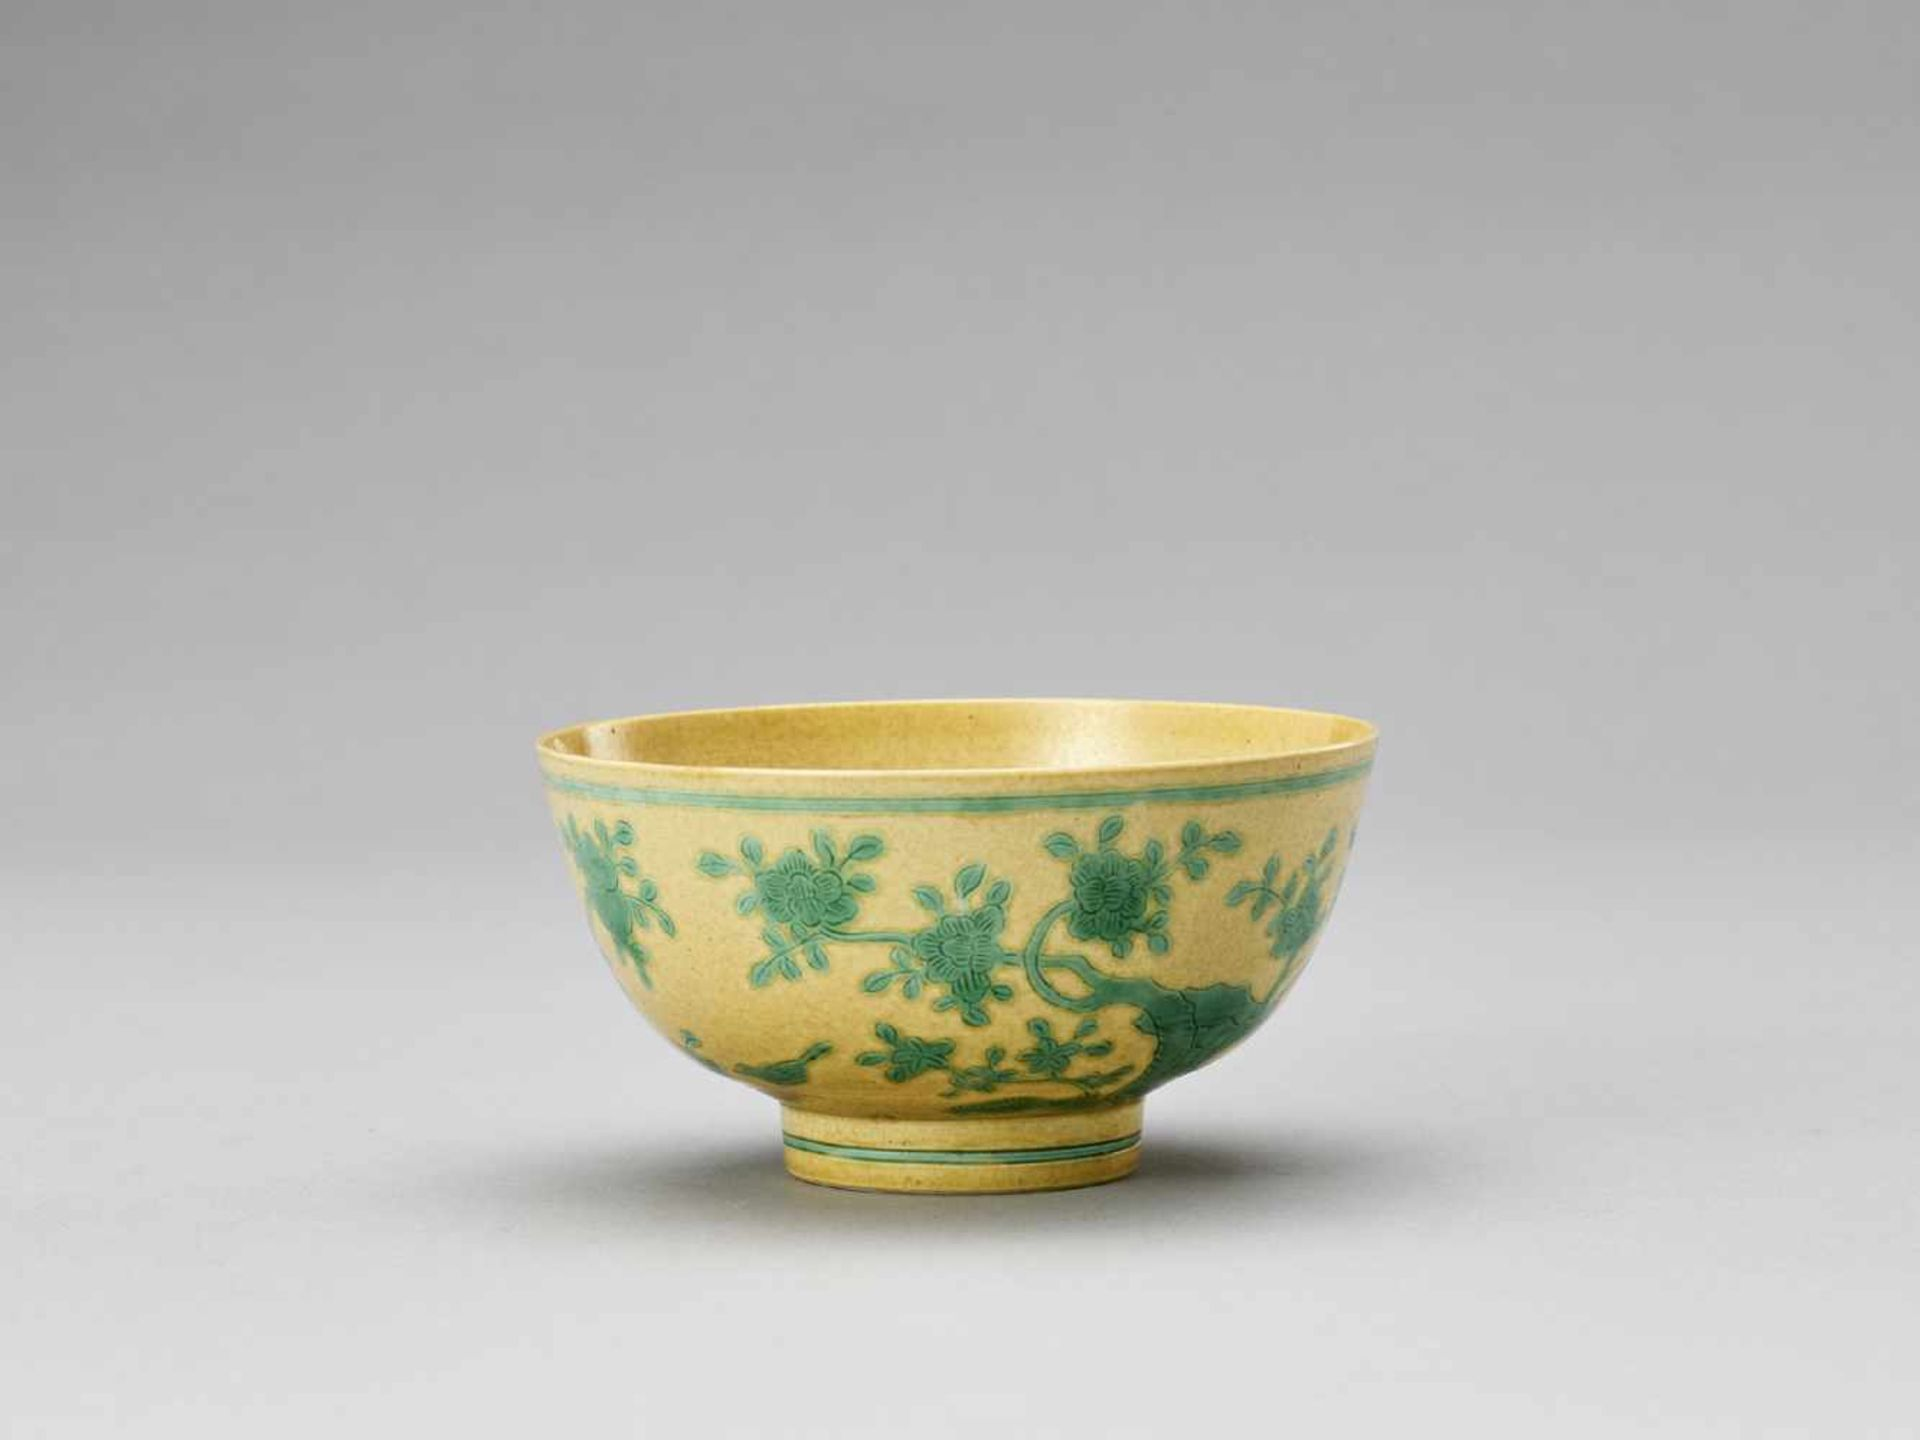 Los 447 - A YELLOW AND GREEN-GLAZED 'PEONIES AND PEACHES' BOWL, REPUBLIC <br